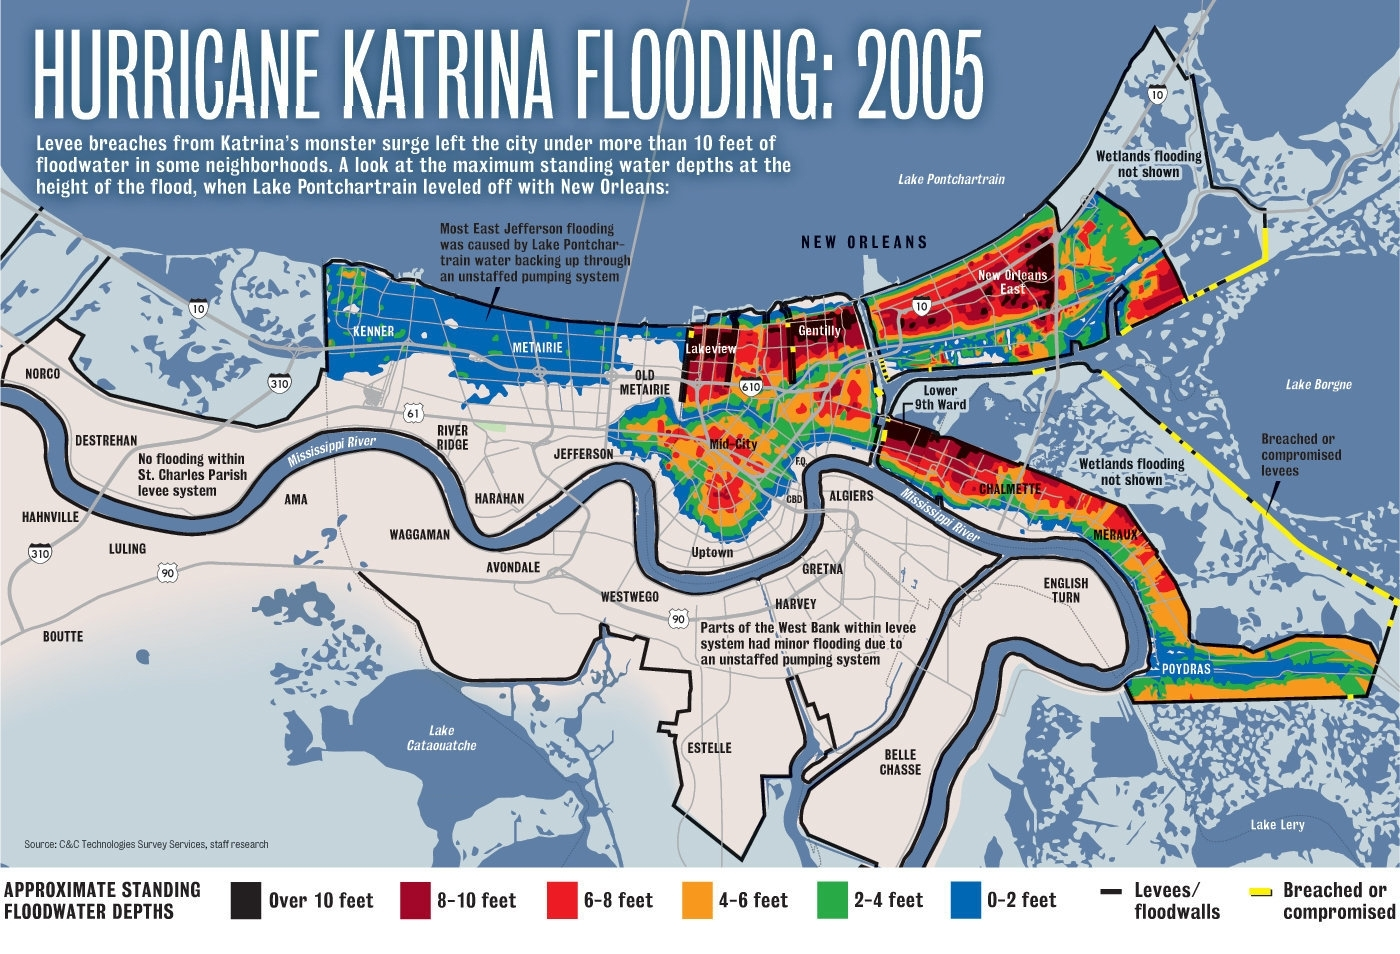 Hurricane Katrina Flooding Compared To A 500-Year Storm Today in Map Of Area Affected By Hurricane Katrina